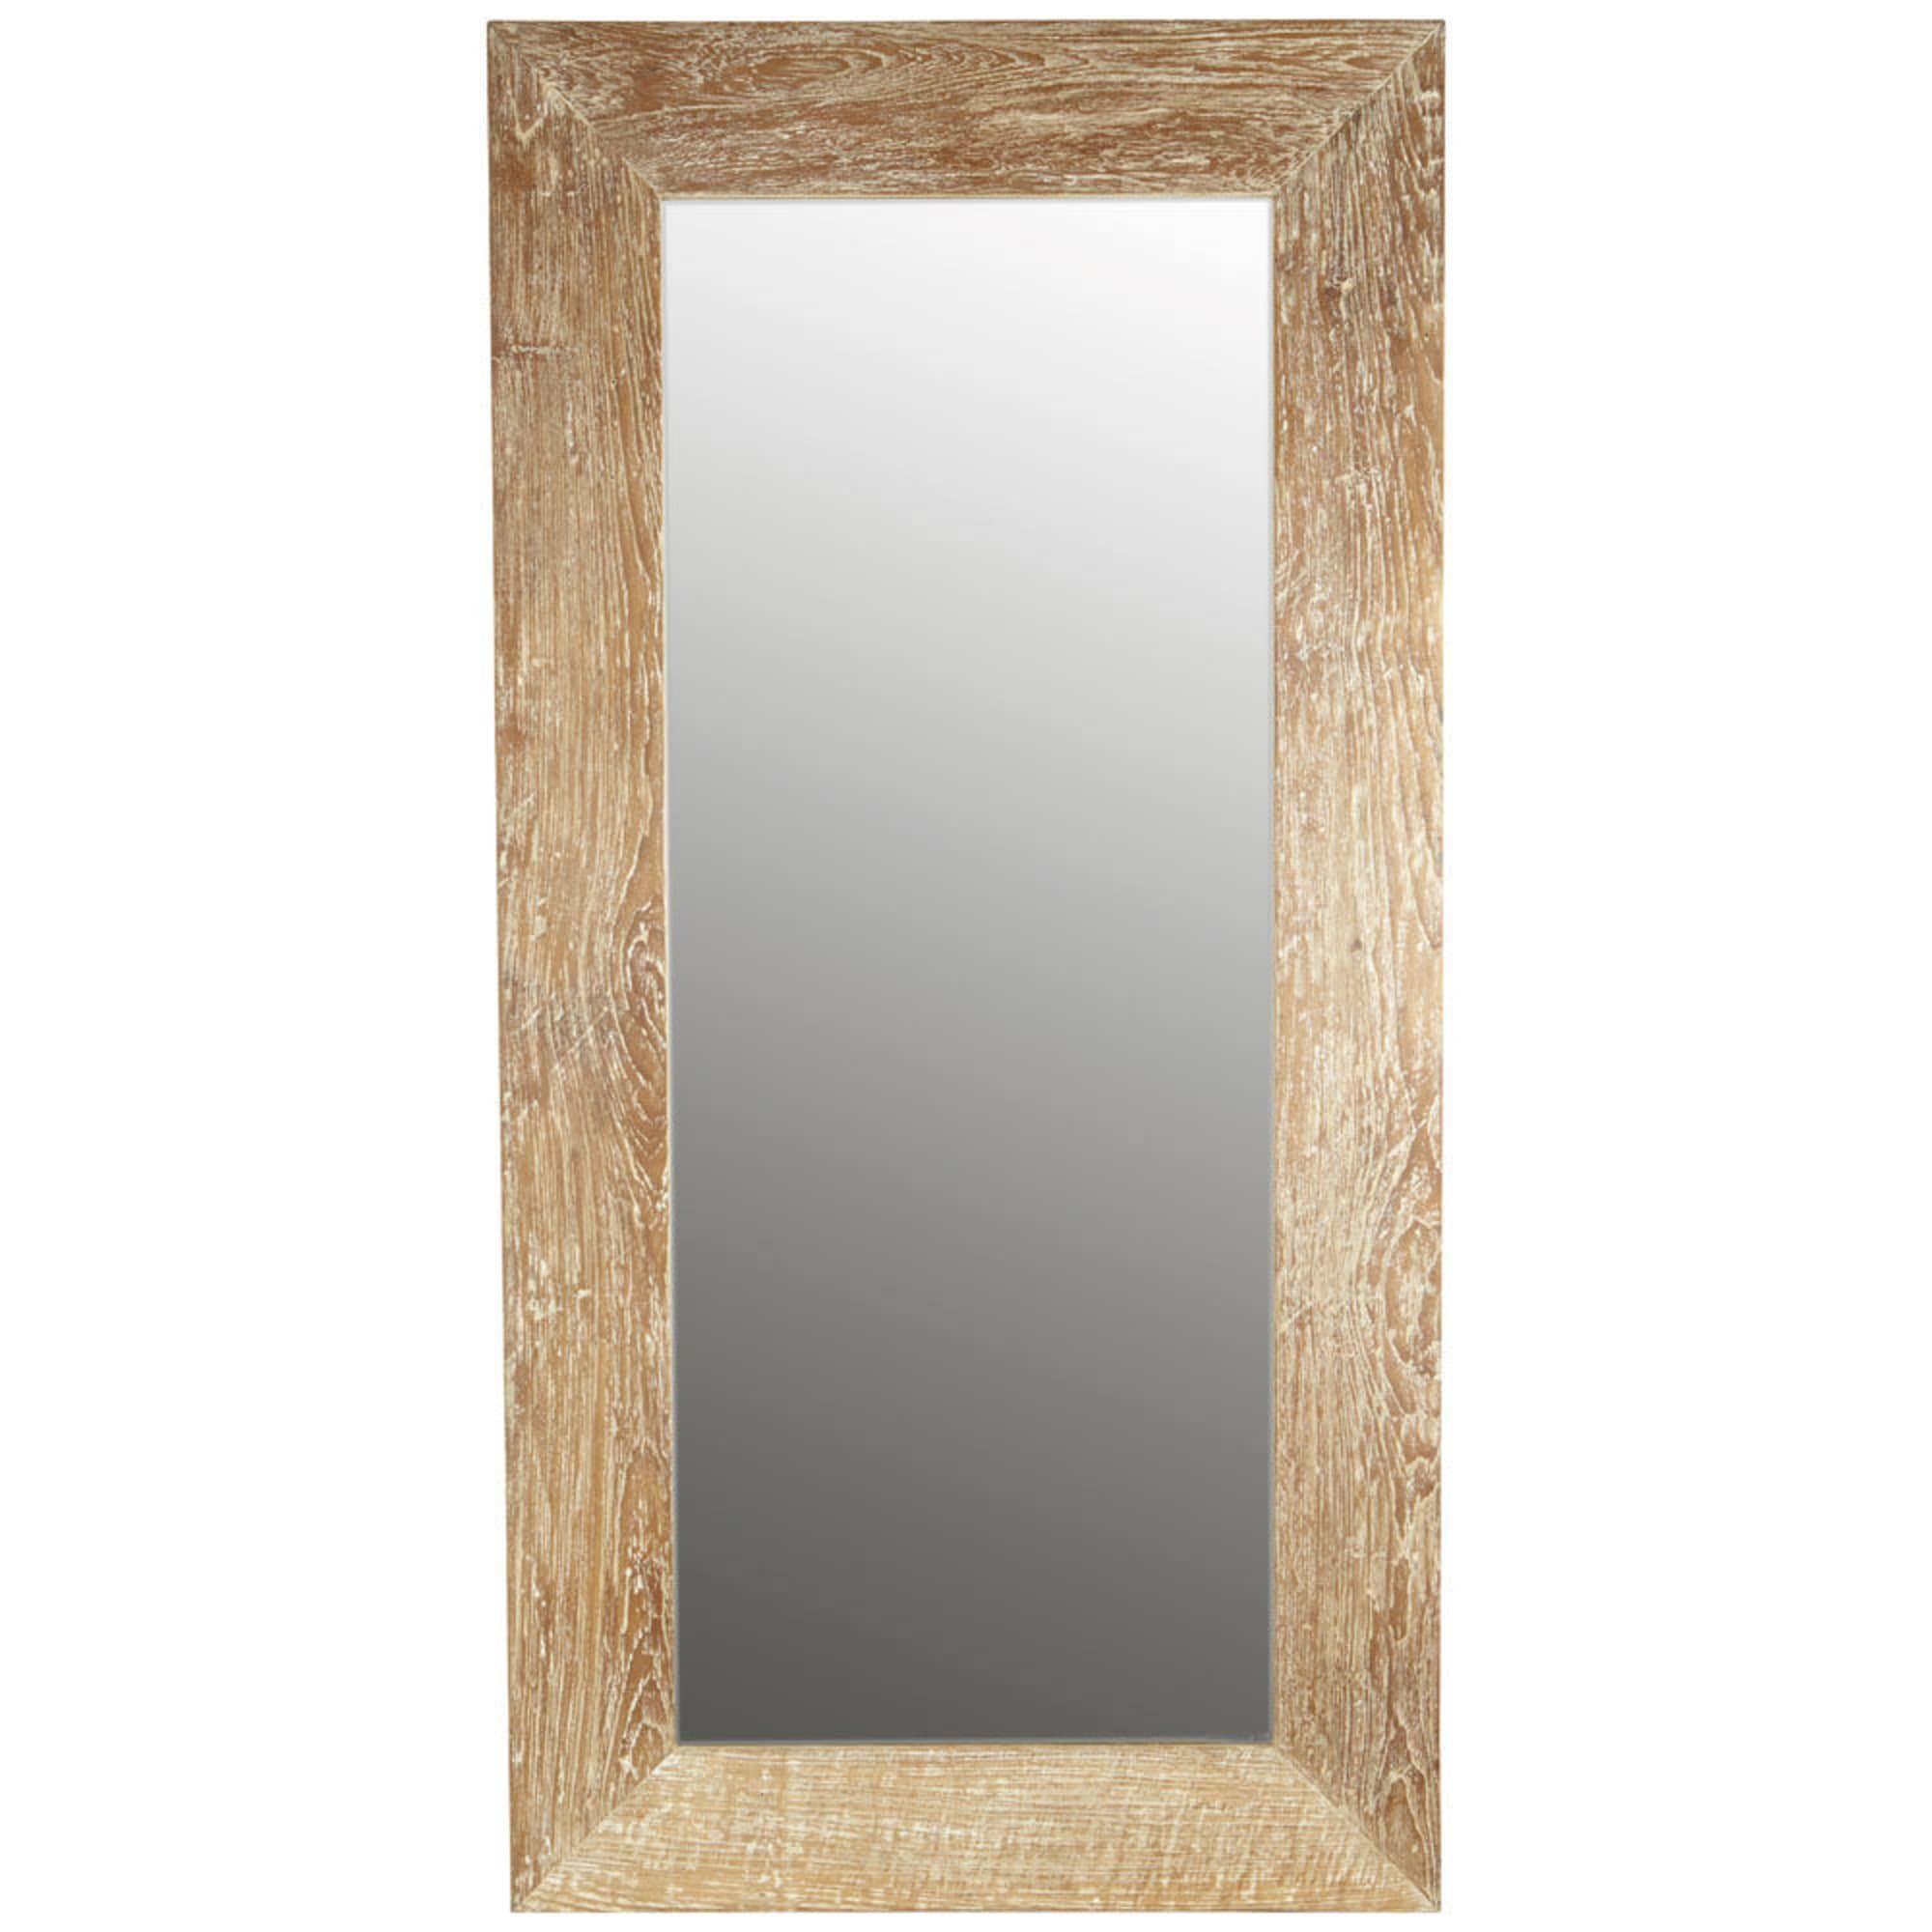 Dressing 200 Cm Whitewashed Wood Mirror H 200cm In 2019 Cazoo Wood Mirror